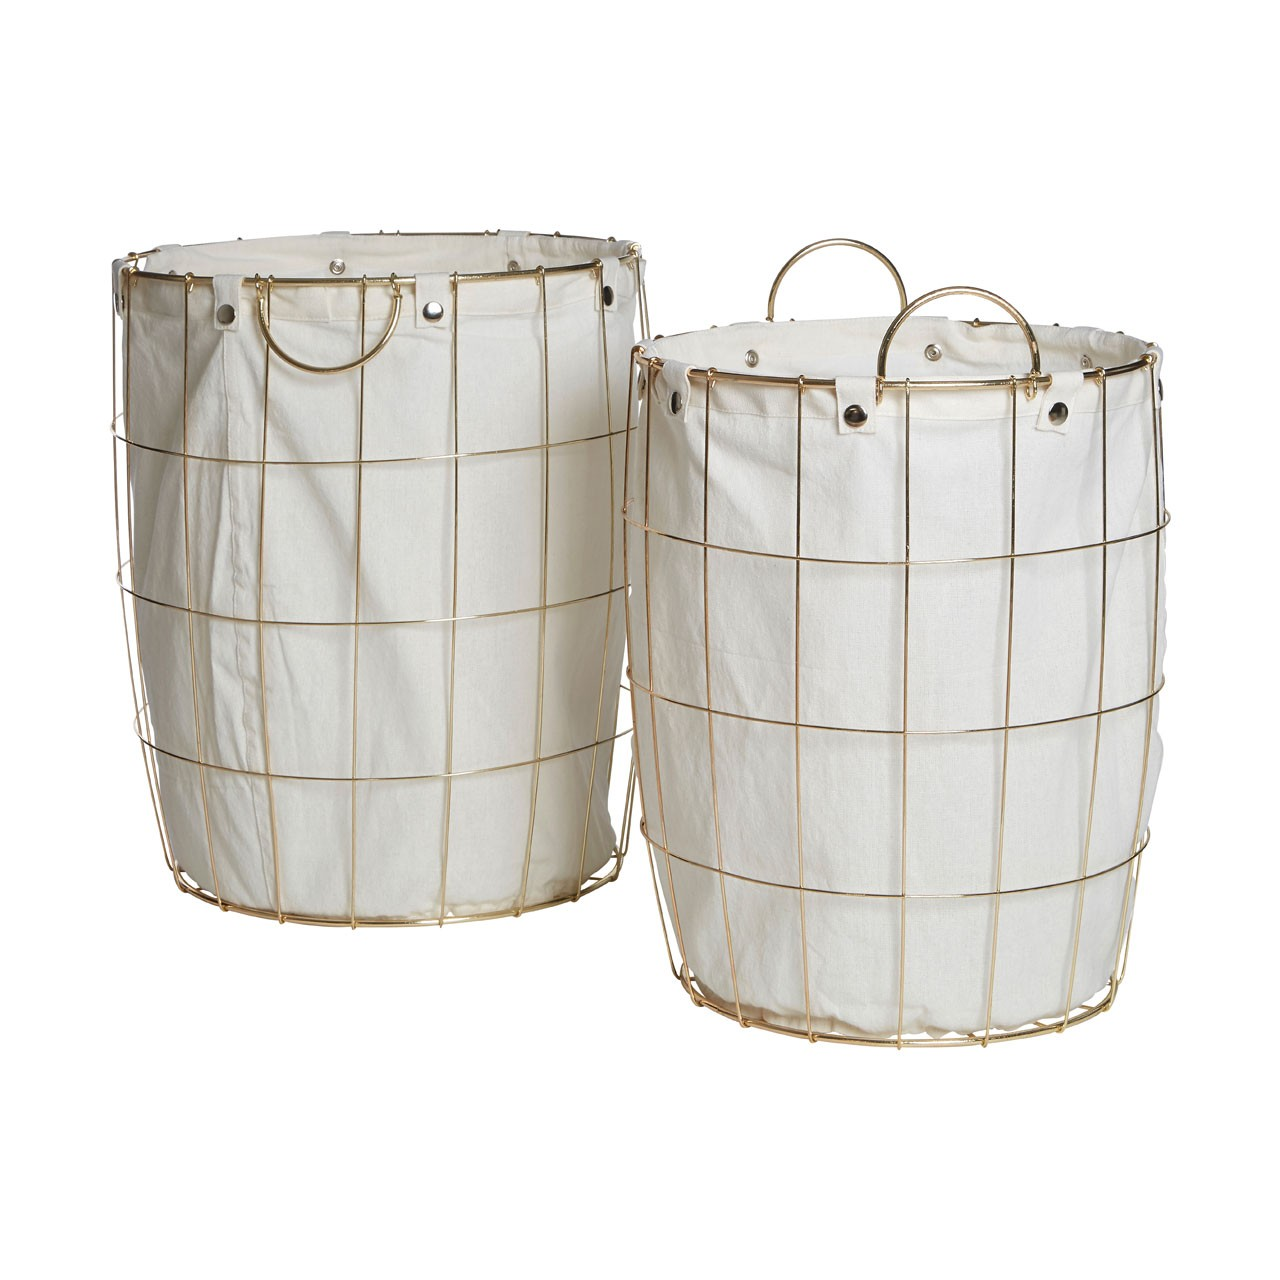 Prime Furnishing Round Gold Wire Laundry Basket - Set of 2 - Click Image to Close